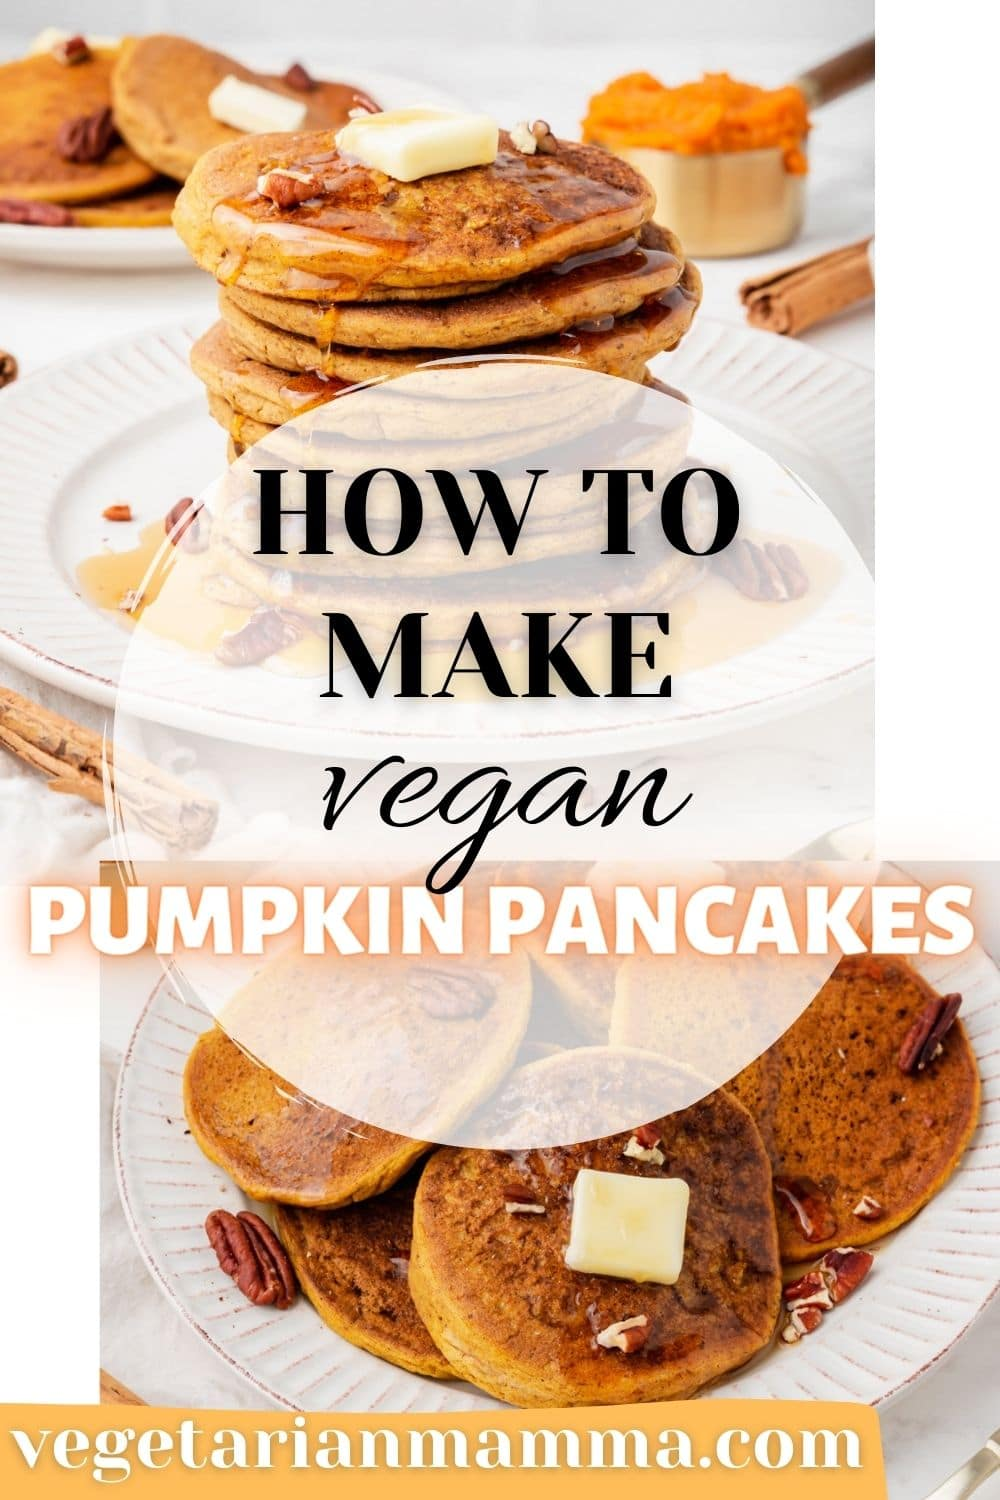 Vegan Pumpkin Pancakes are the fall breakfast recipe you've been missing! Pumpkin puree pancakes are ready in just 20 minutes with all the fall flavors like cinnamon, nutmeg, ginger, and cloves. #pumpkinpancakes